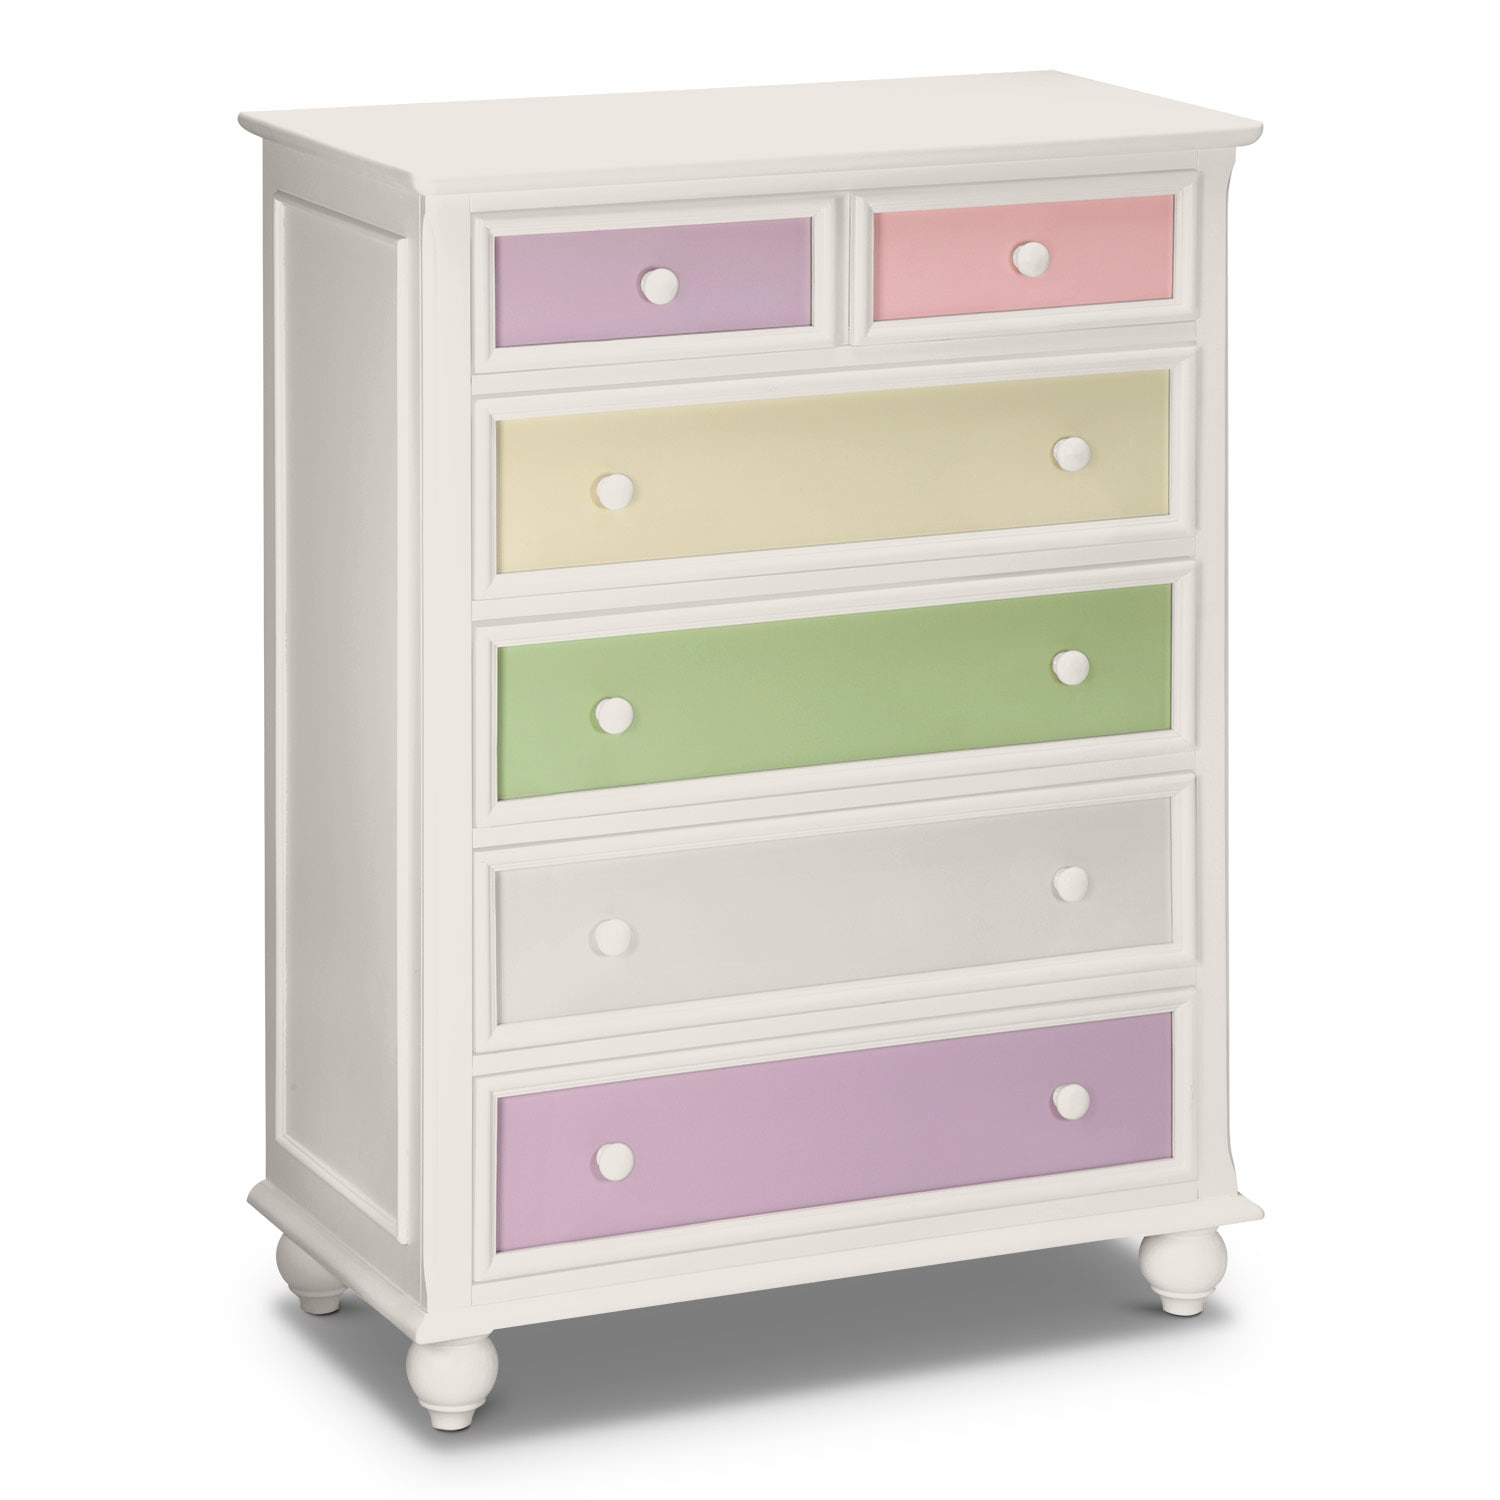 Bedroom Furniture - Colorworks Chest